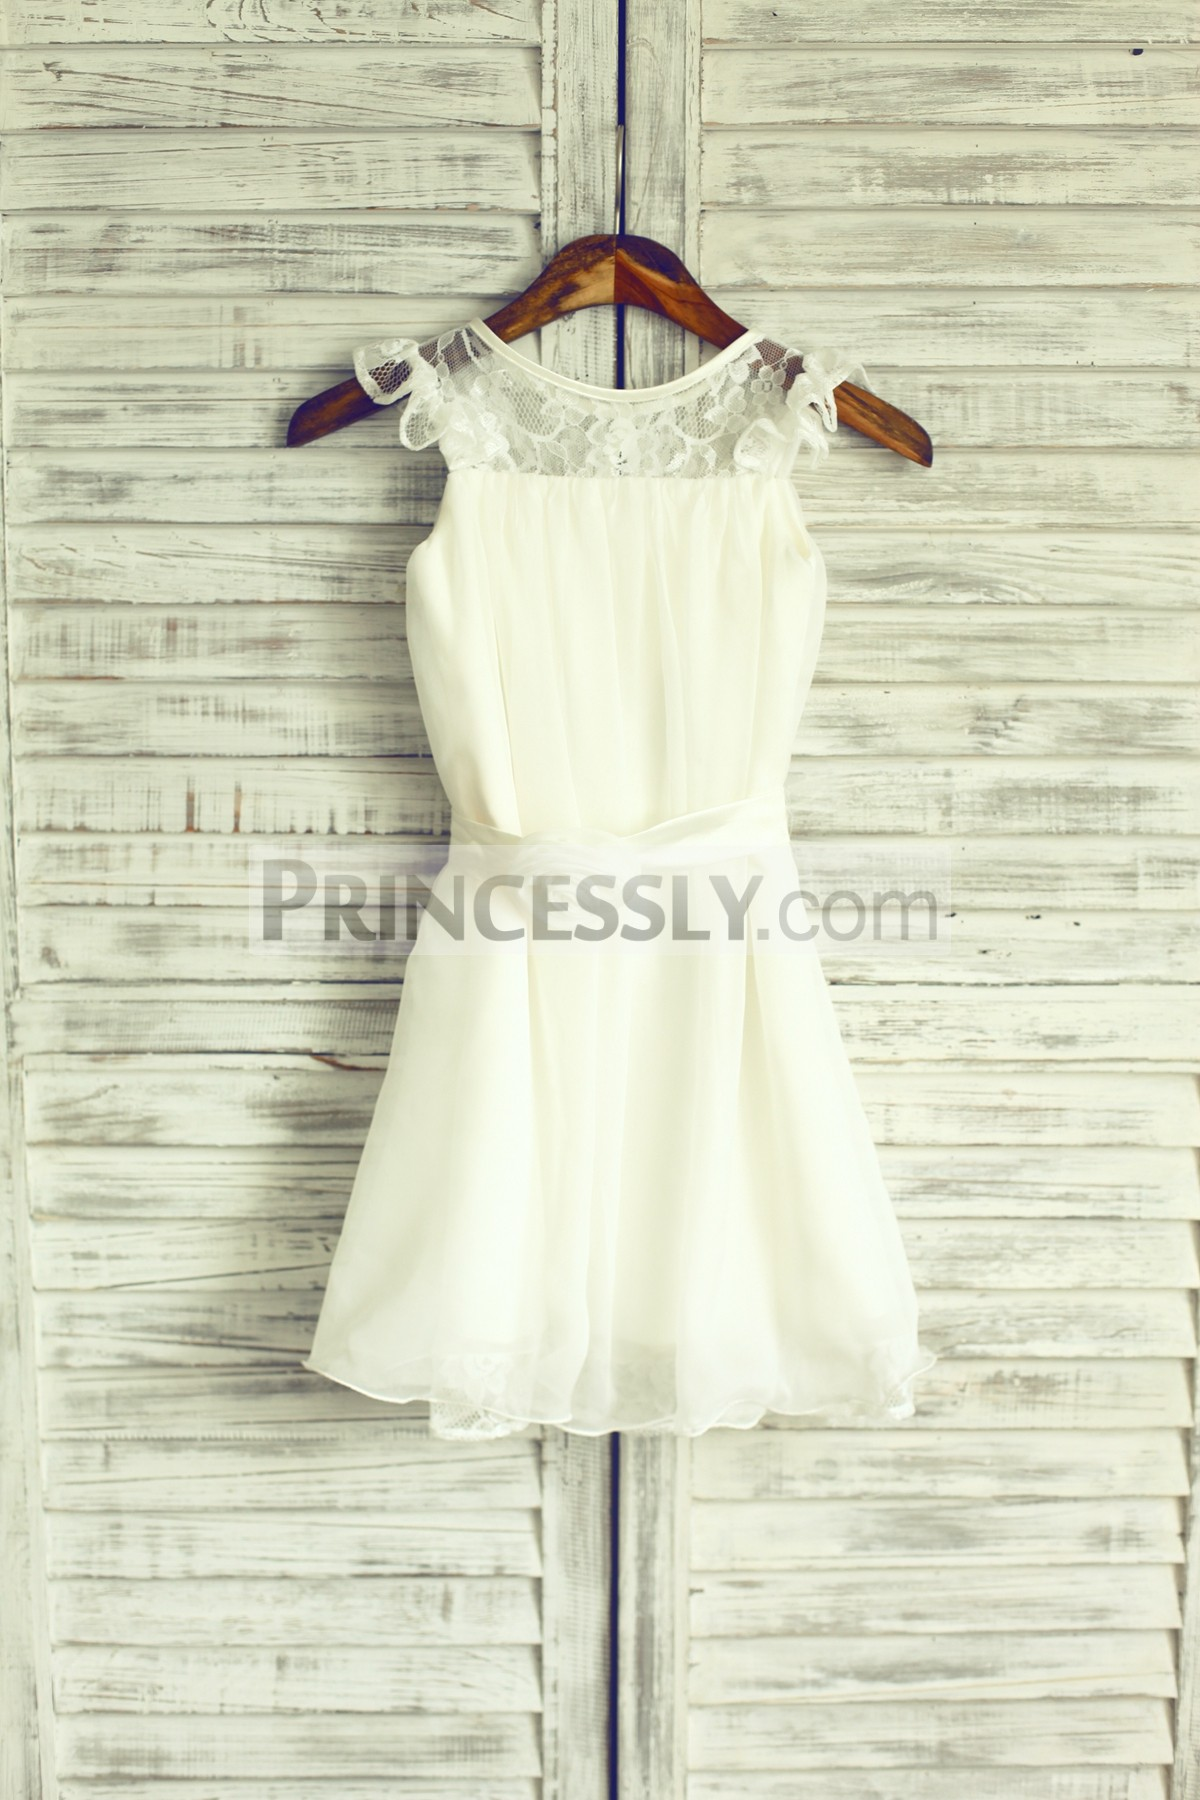 Ivory chiffon flower girl dress with lace